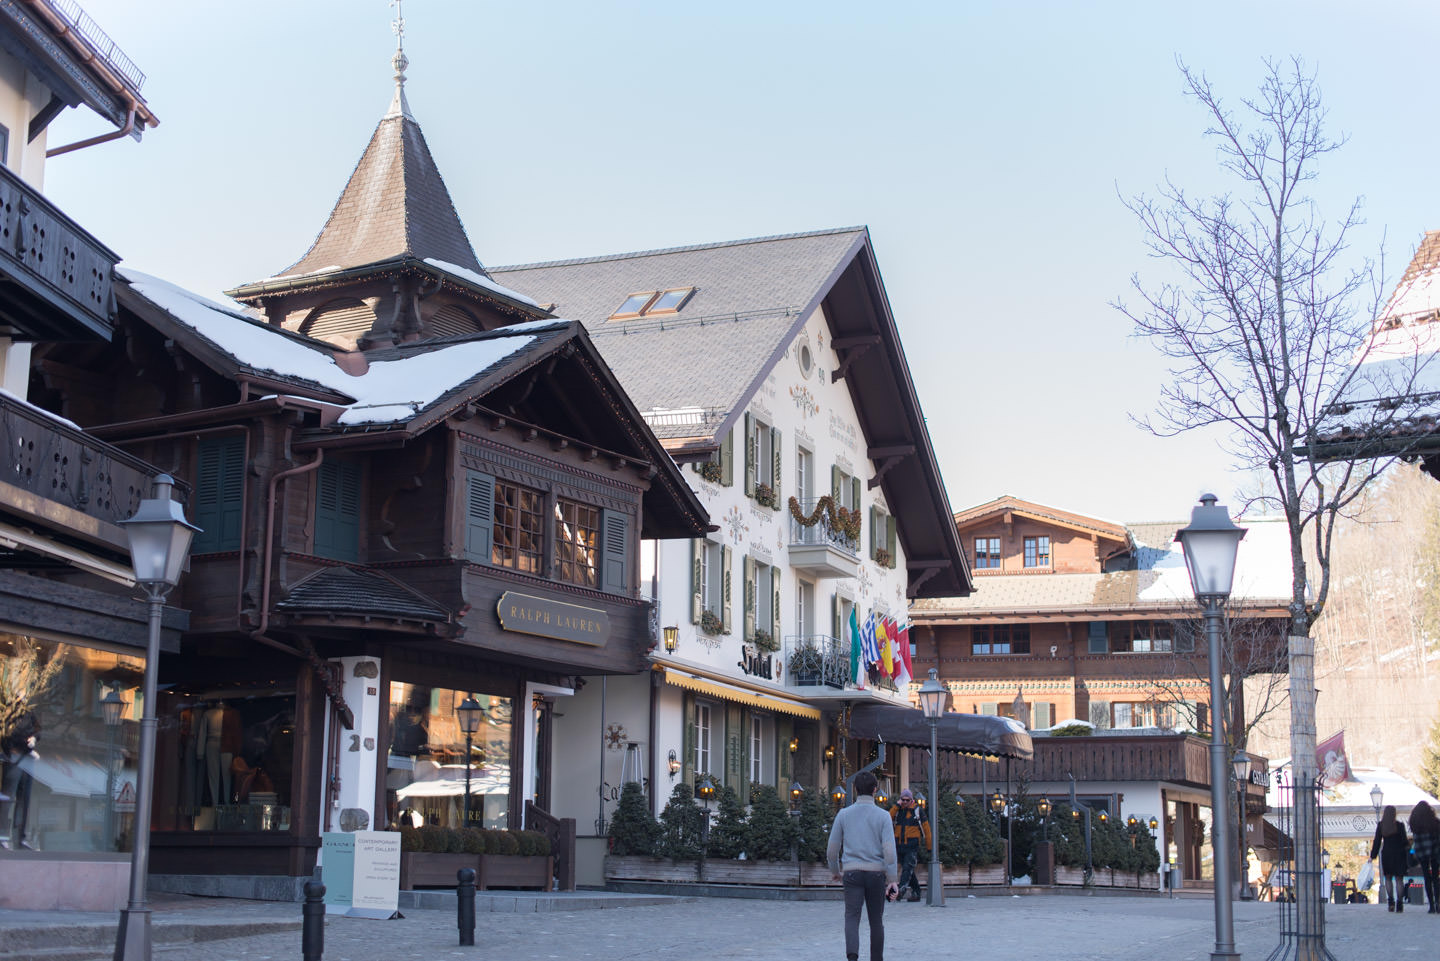 Blog-Mode-And-The-City-Lifestyle-Parenthese-Enchantee-Gstaad-ville-2